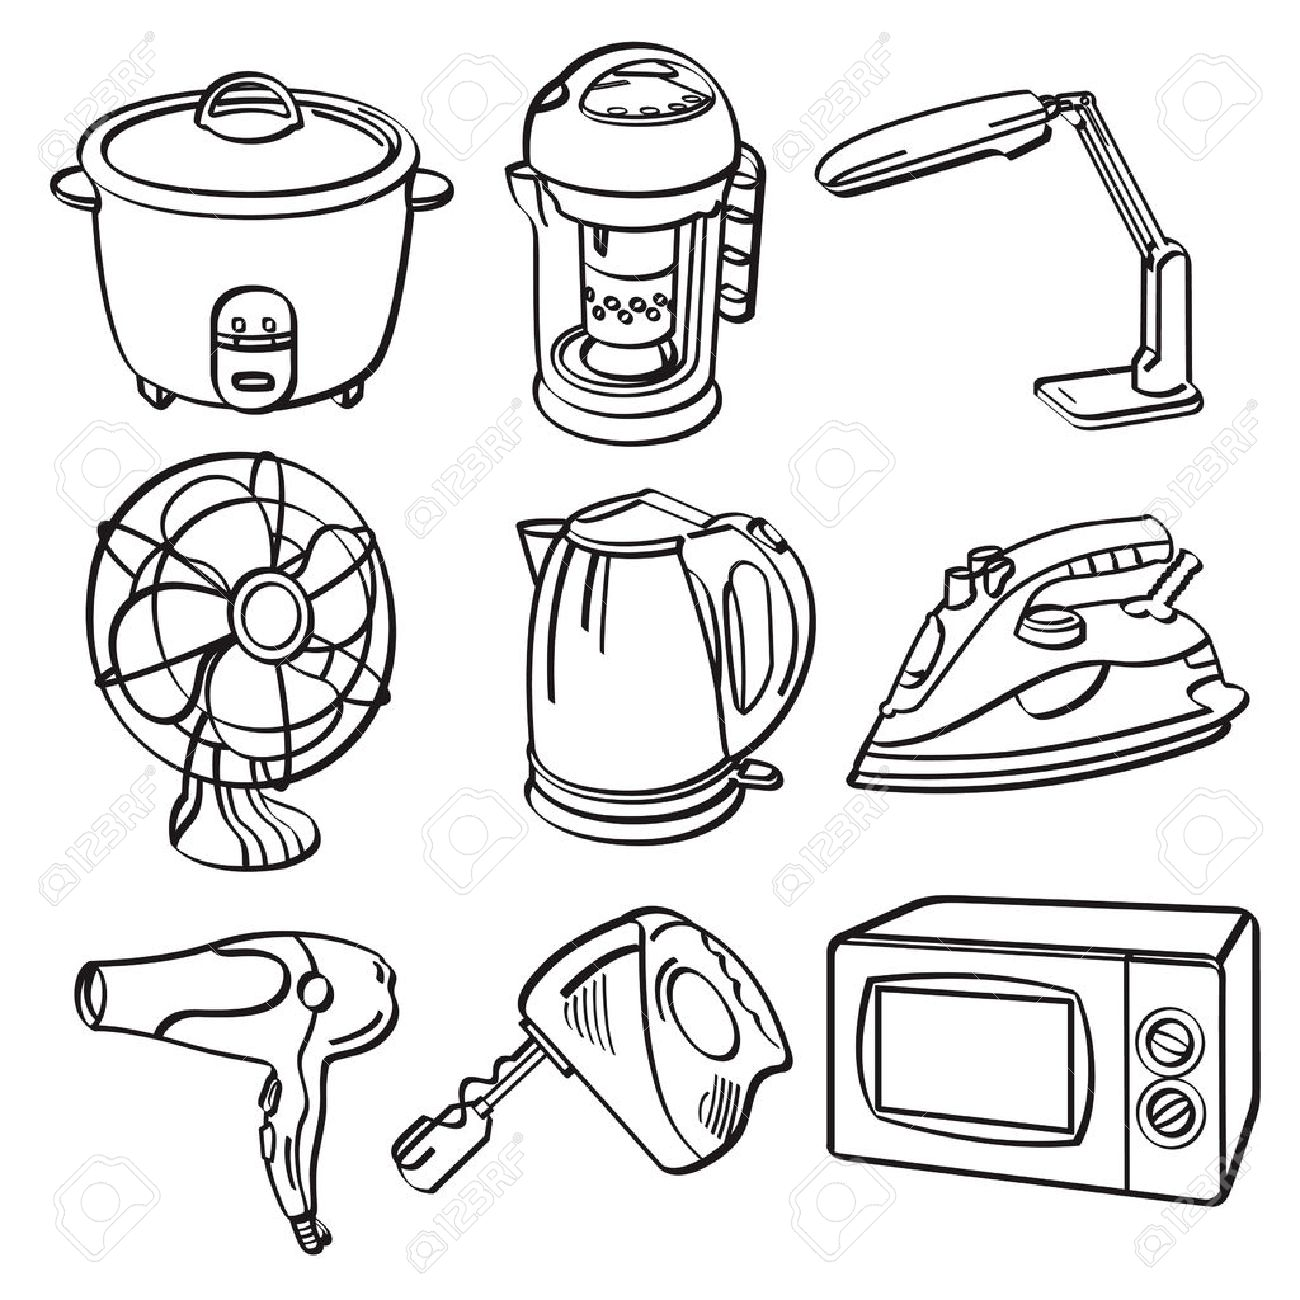 Home Electric Appliances Royalty Free Cliparts, Vectors, And Stock ...